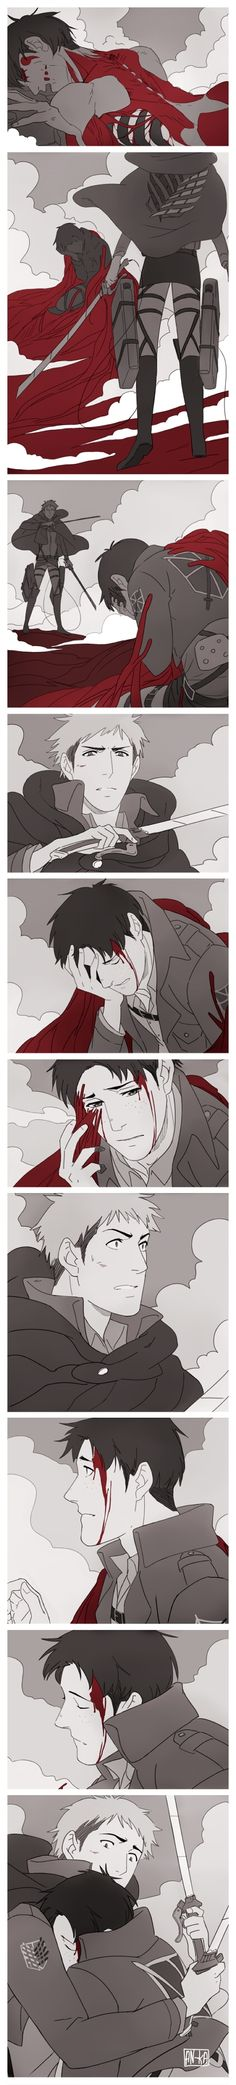 SnK- Marco x Jean- OMFG wat if this actually happened in the show<<<I would cry!!!!!